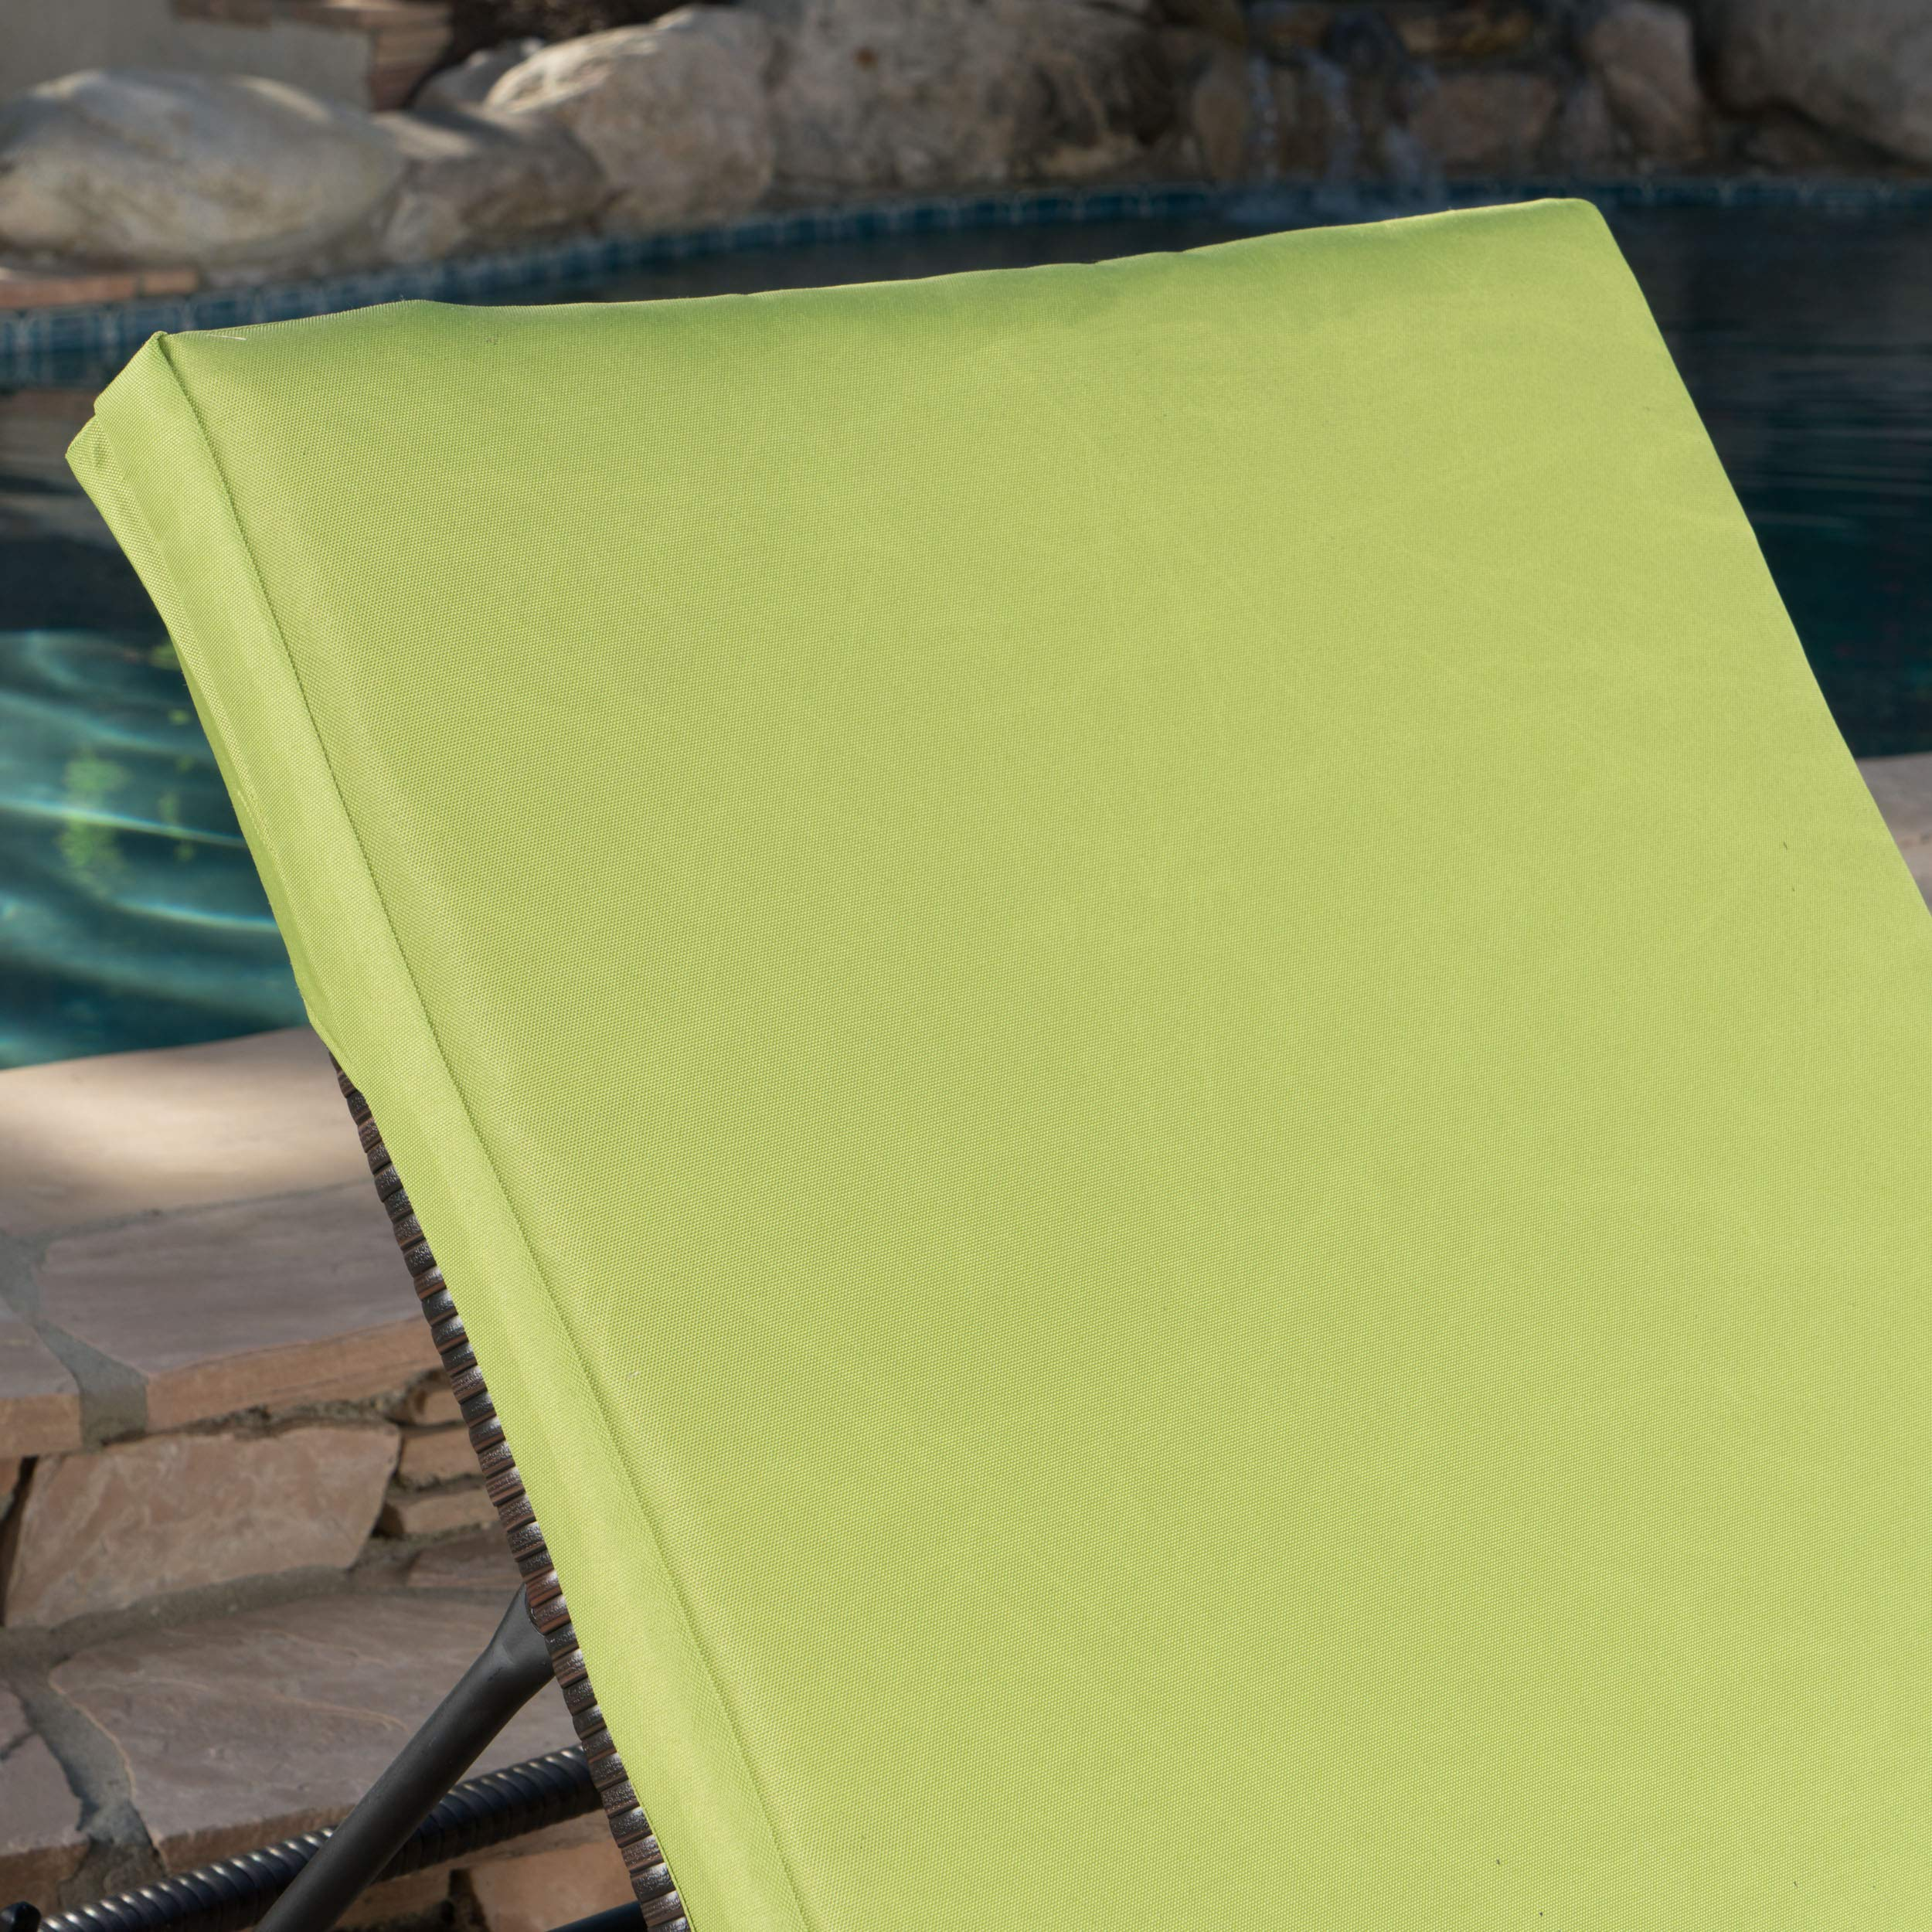 Great Deal Furniture Jessica Outdoor Green Water Resistant Chaise Lounge Cushion (Set of 2)